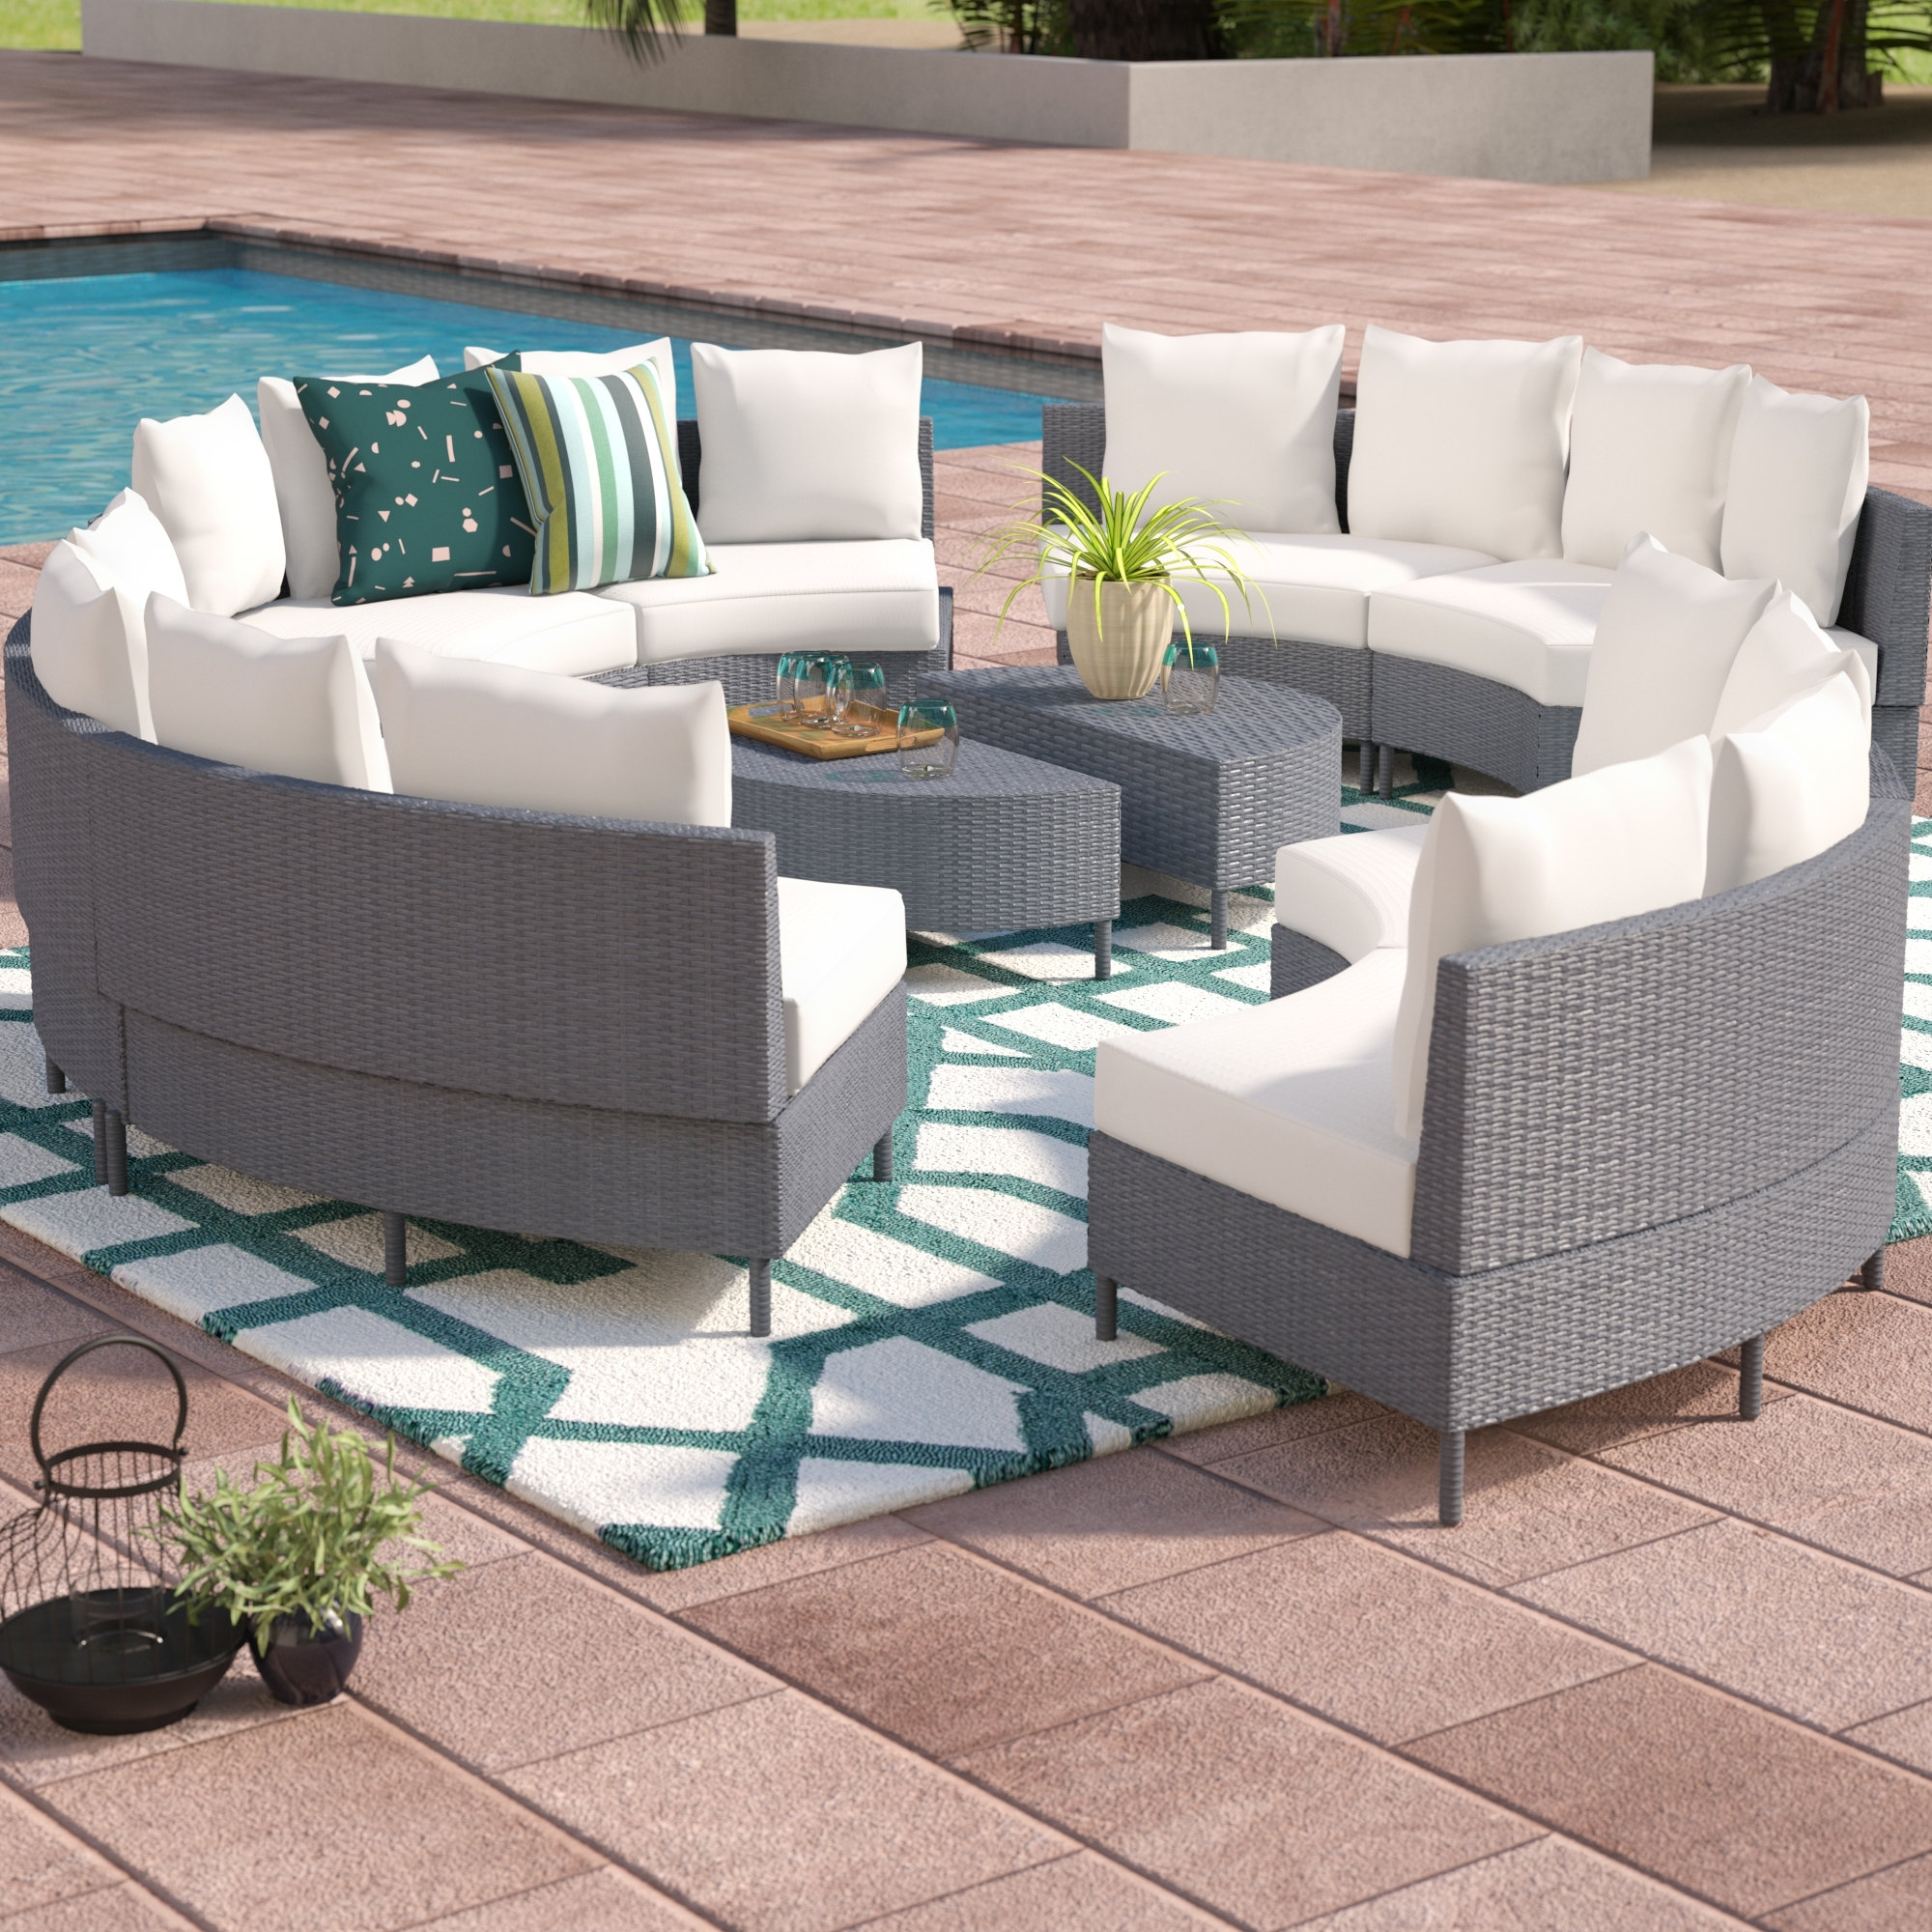 Beachcrest Home Sena 10 Piece Rattan Sectional Set With Cushions in Karen 3 Piece Sectionals (Image 3 of 30)